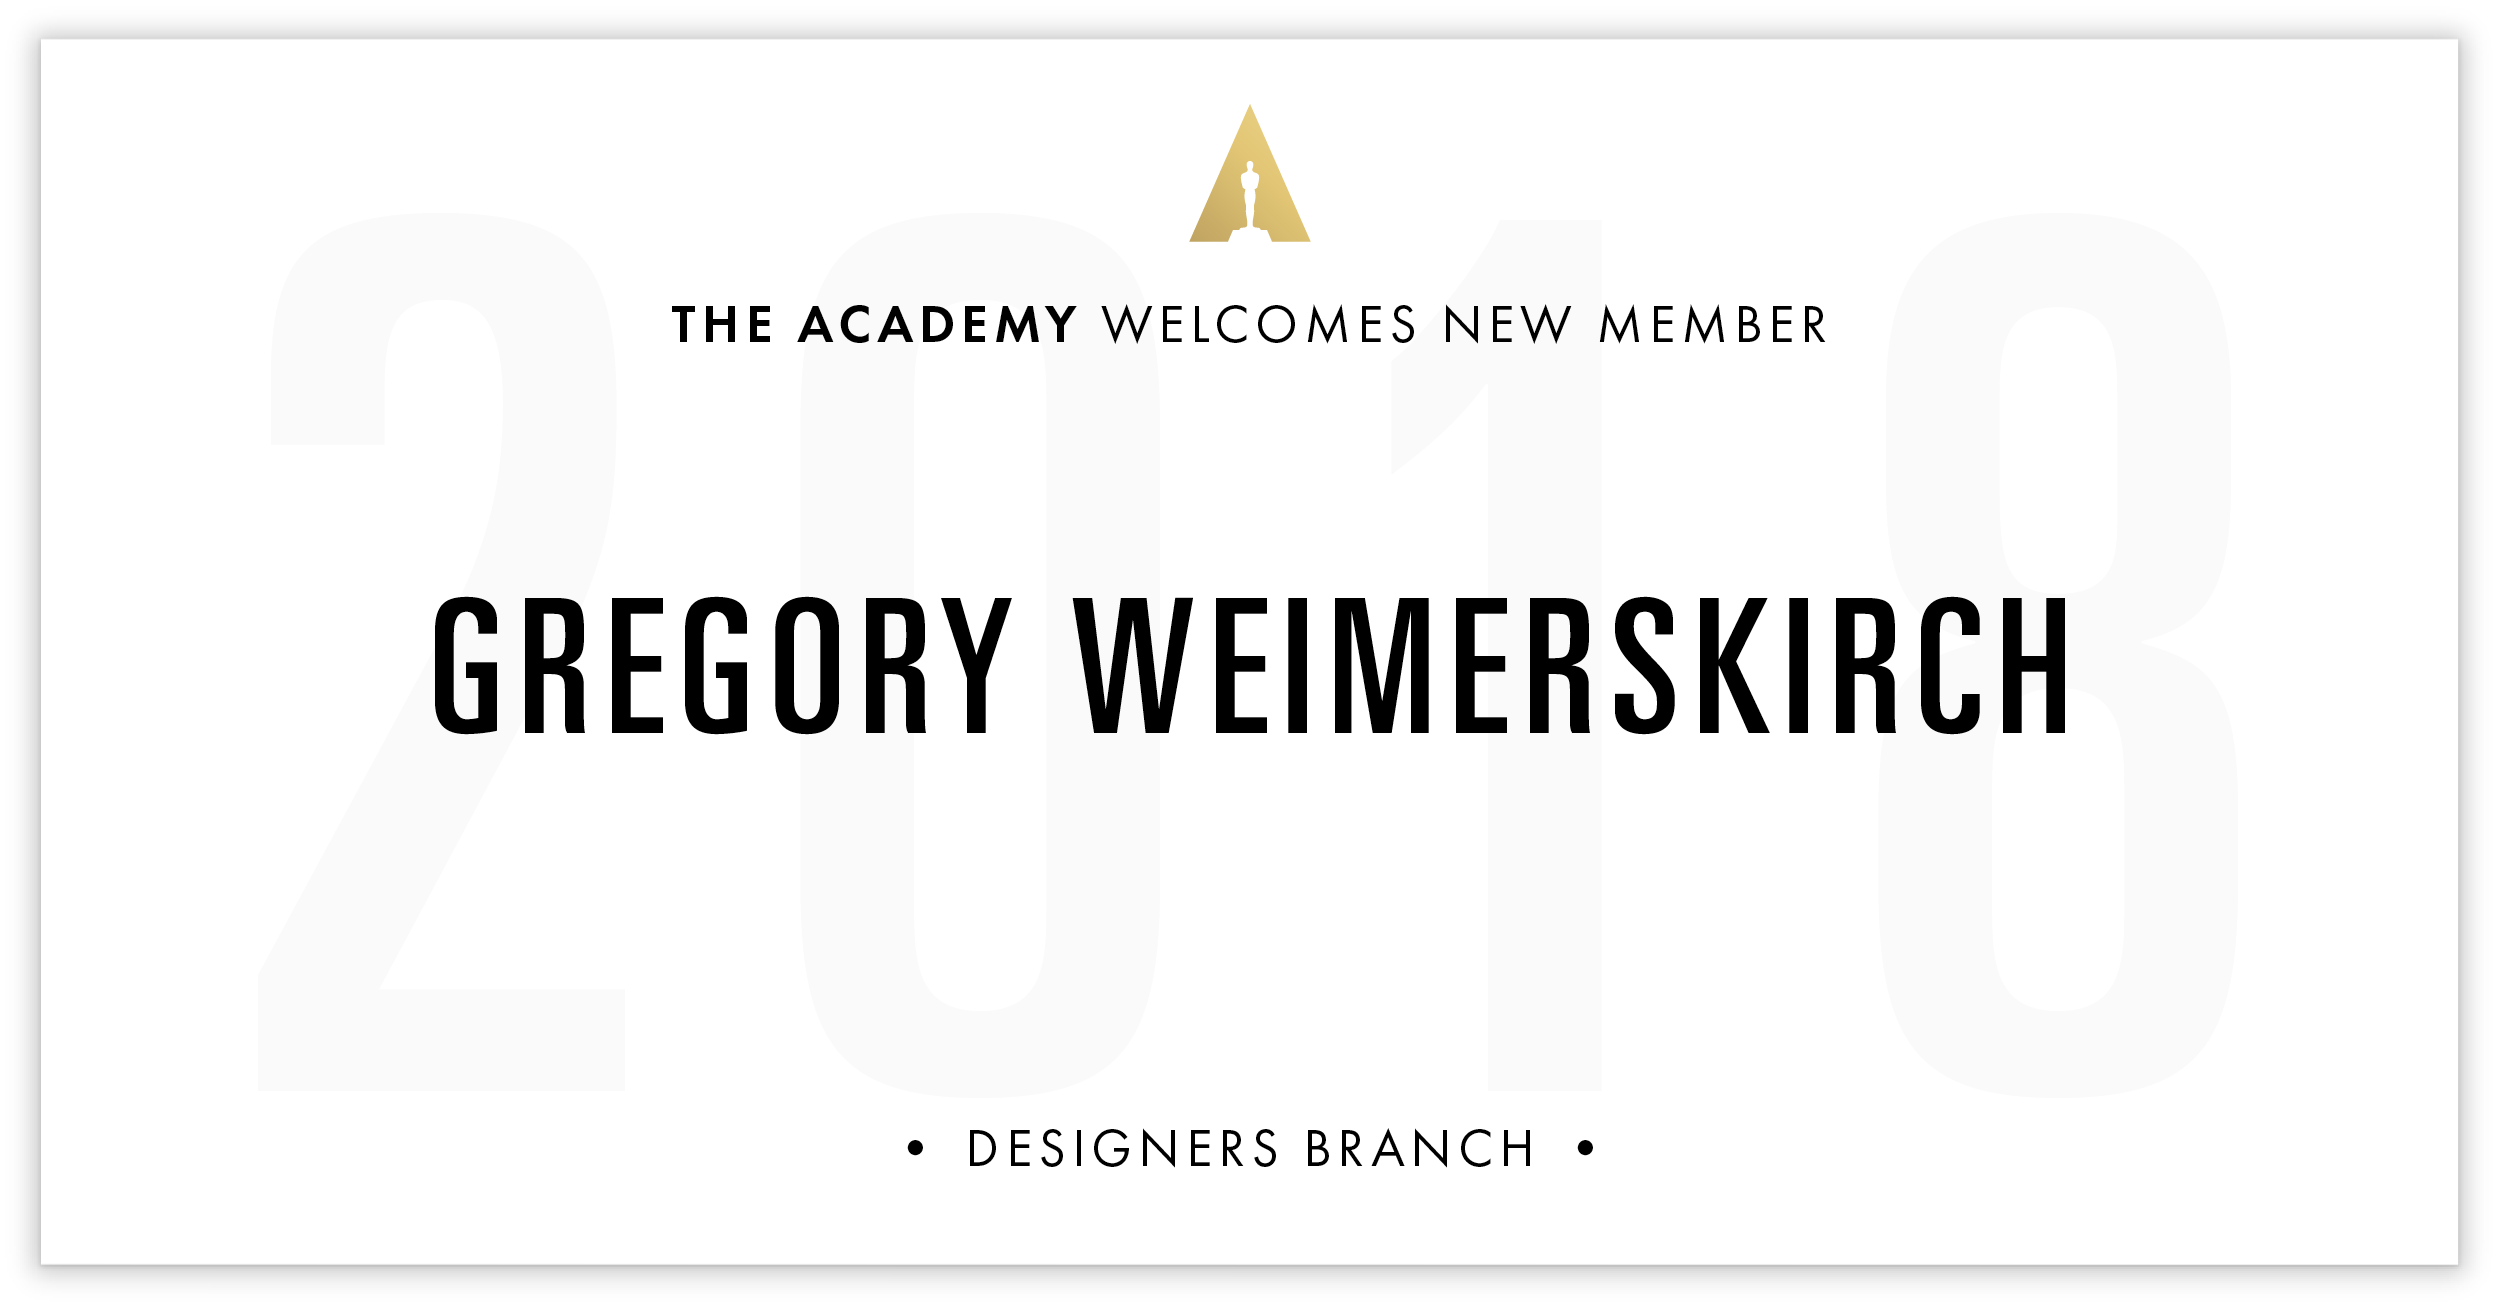 Gregory Weimerskirch is invited!